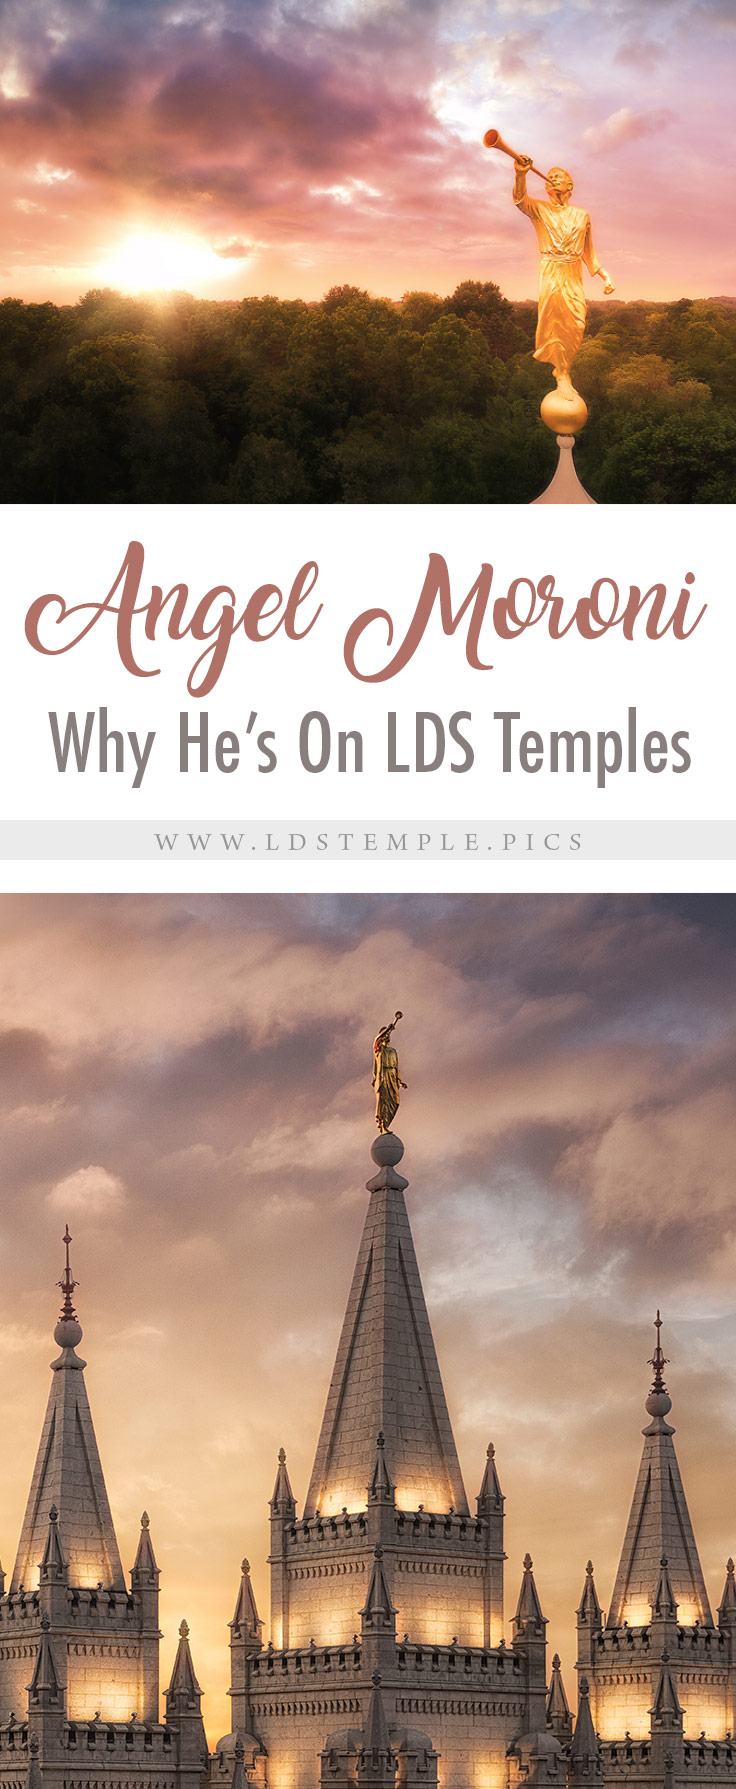 Why the Angel Moroni Tops Most LDS Temples | If you've seen a temple, you've probably seen a golden statue on top. That was the Angel Moroni. Have you wondered why he stands atop so many LDS temples?